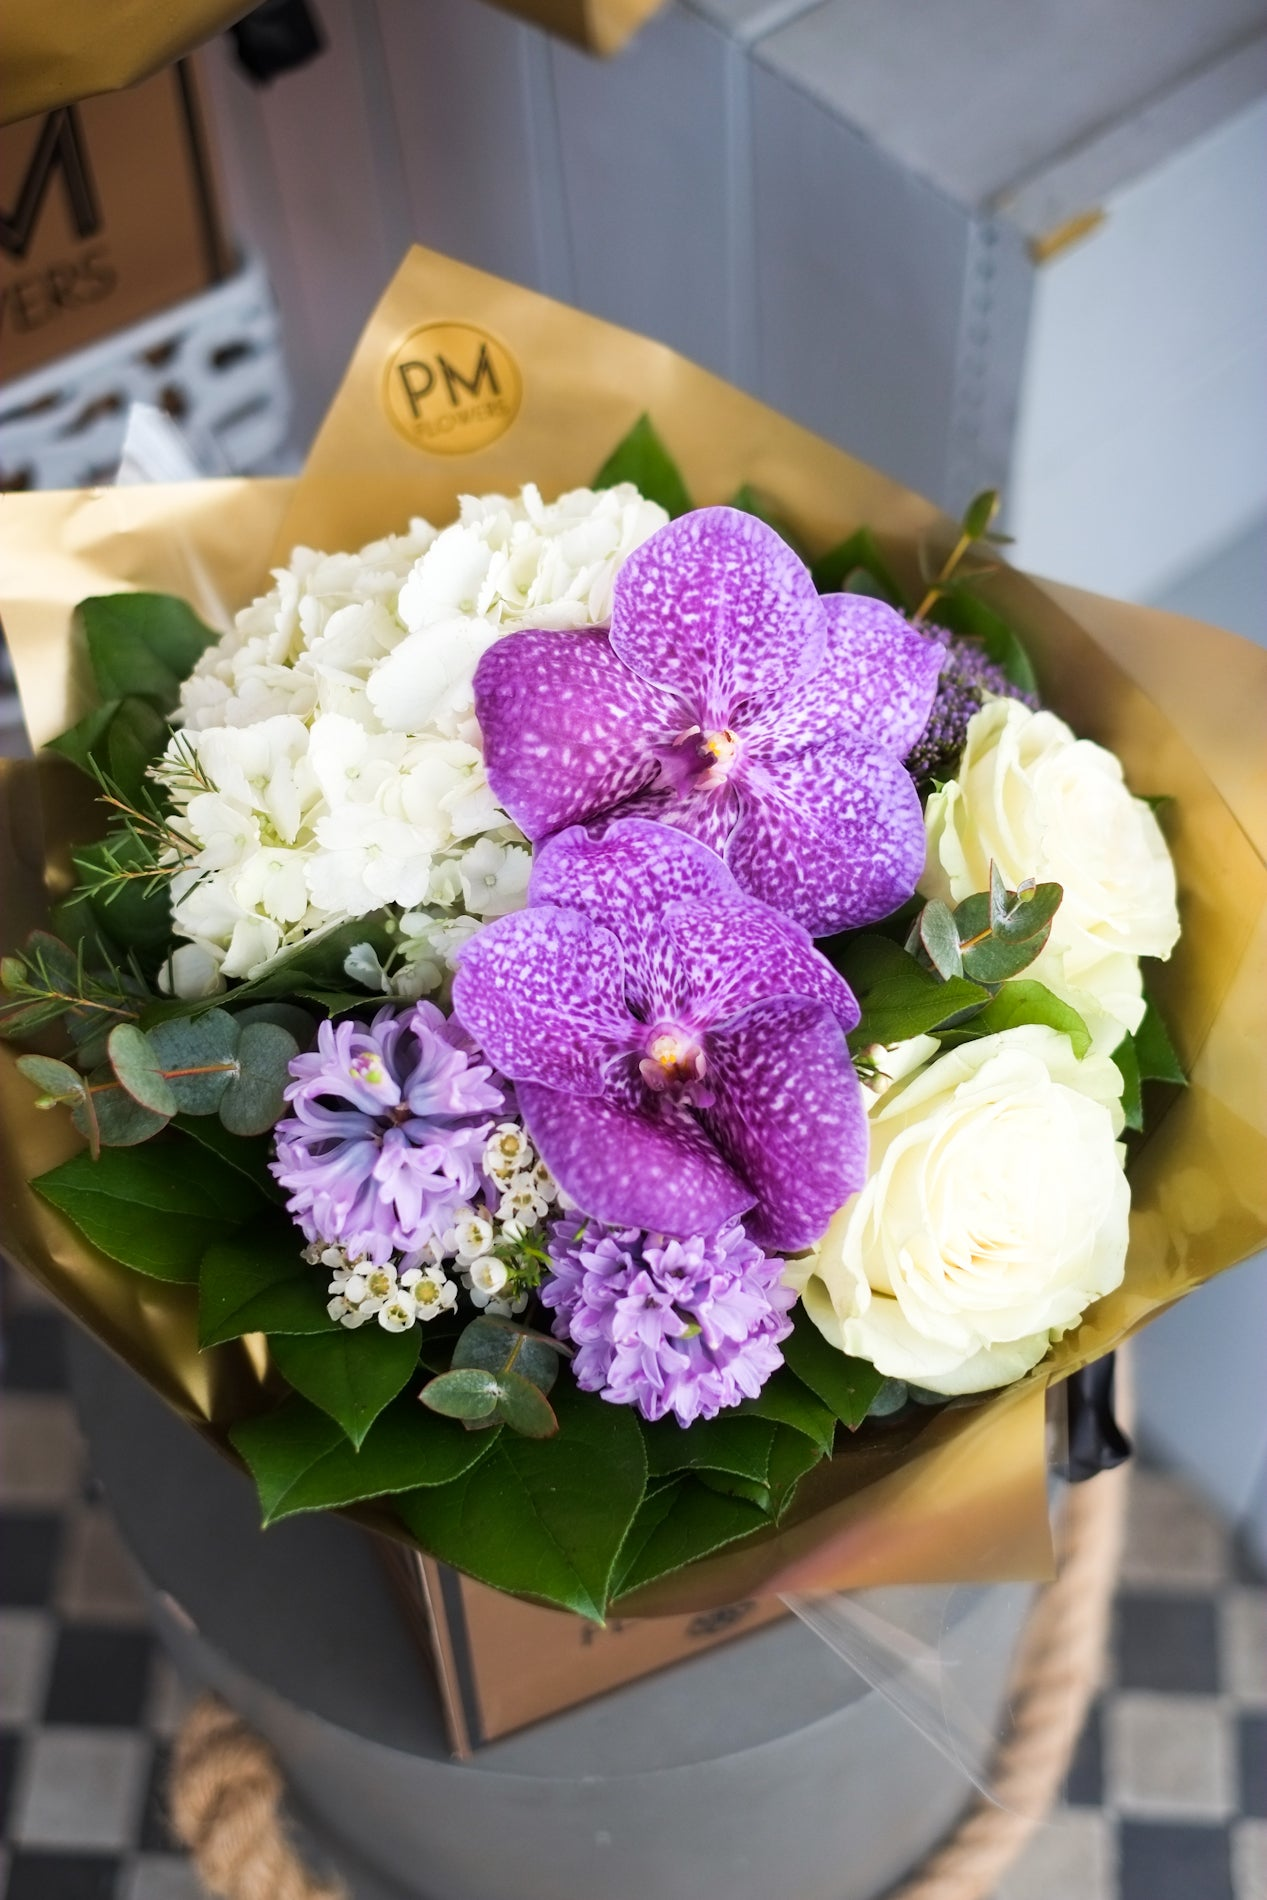 A cute & short bouquet featuring white hydrangea, lilac vanda, white roses, lilac hyacinth, spray roses, and a mixture of foliages.